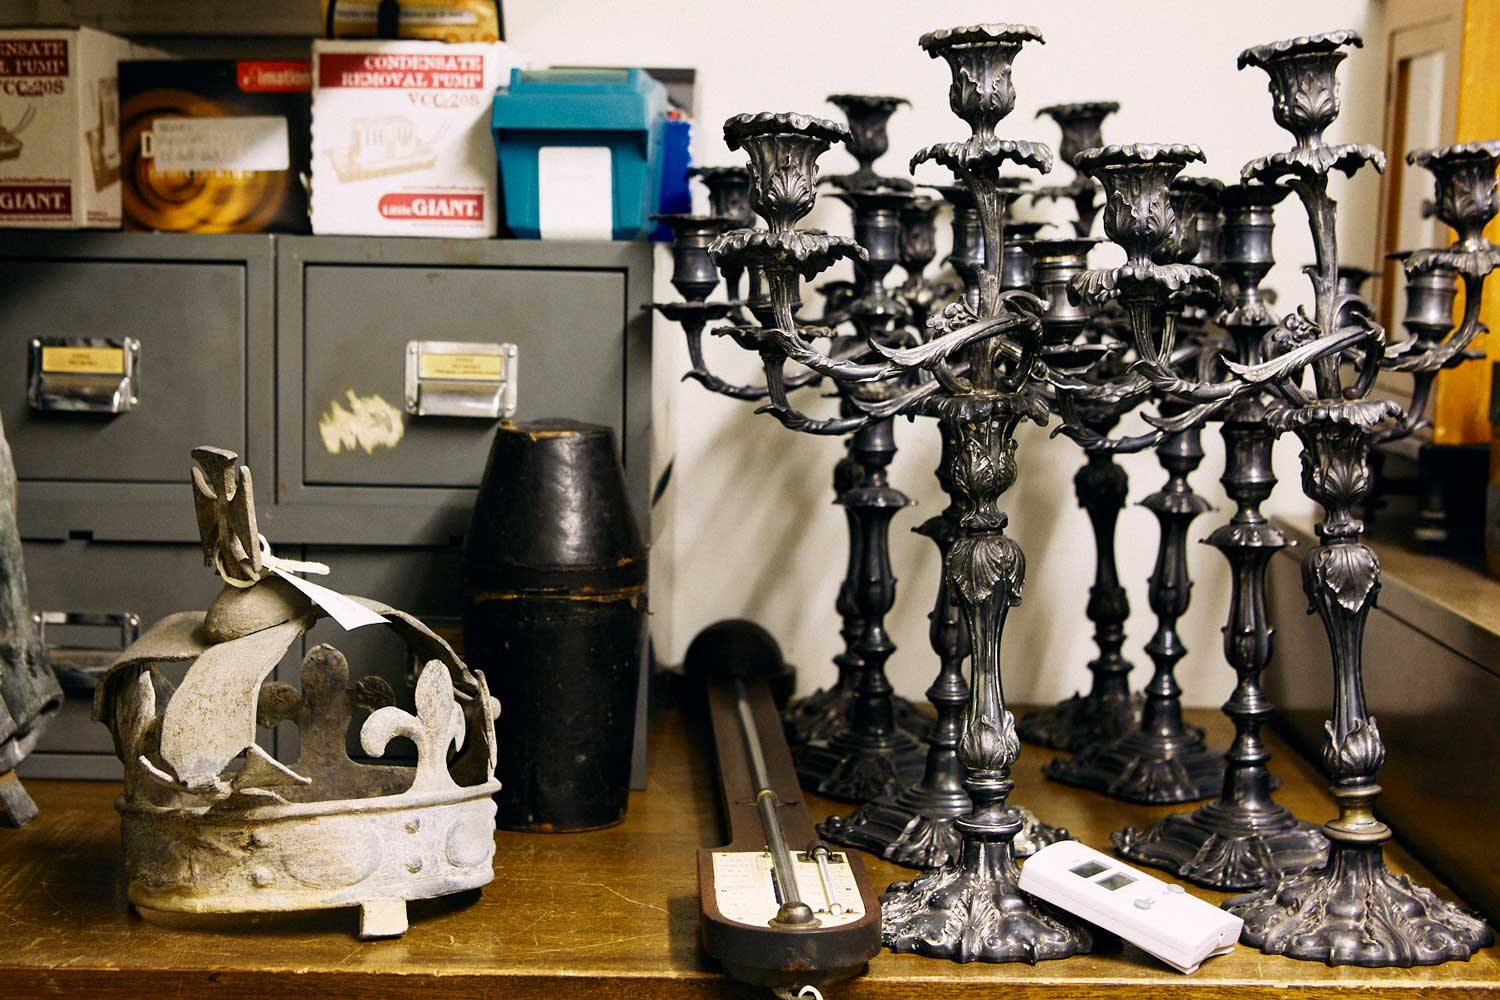 Candlesticks and crown from the Barts museum collections